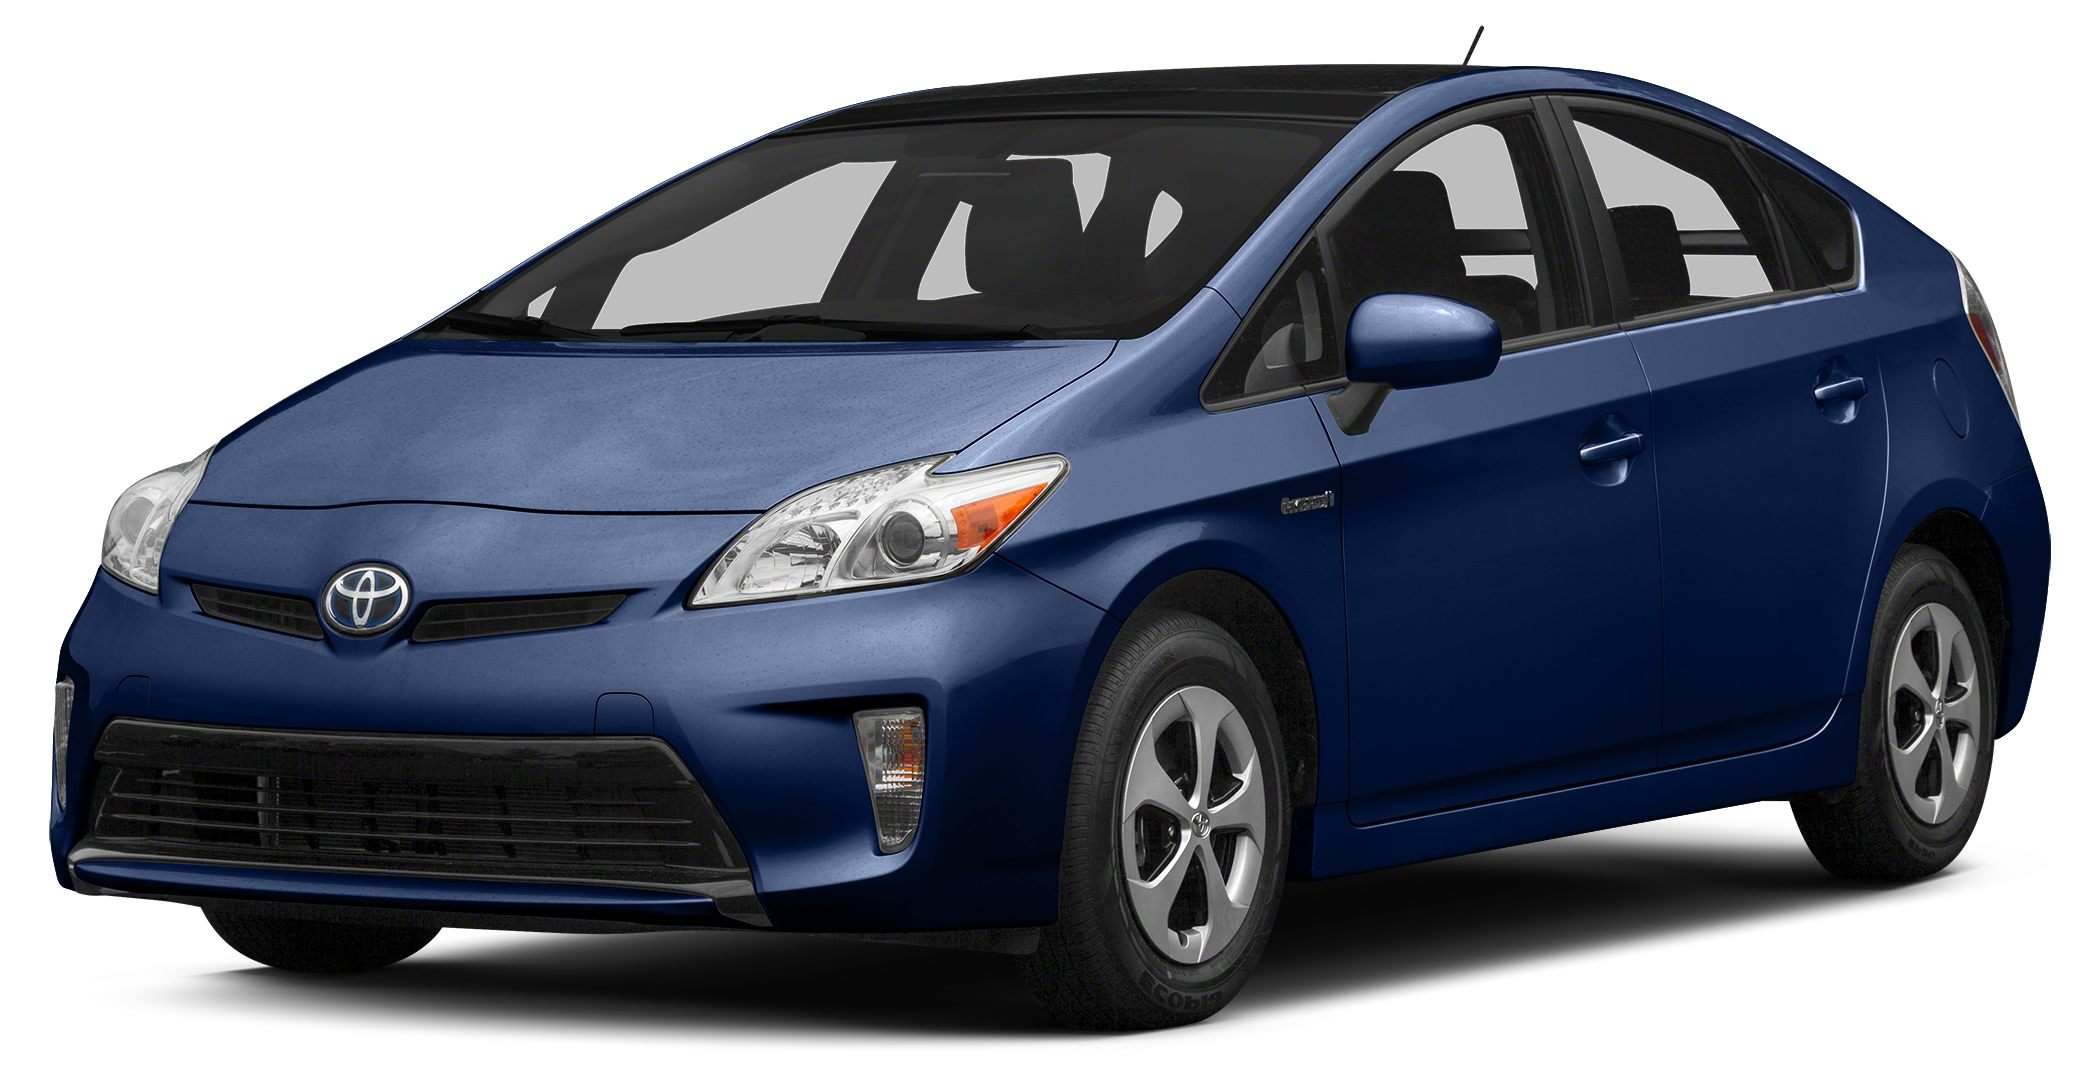 2013 Toyota Prius Three FUEL EFFICIENT 48 MPG Hwy51 MPG City CARFAX 1-Owner NAUTICAL BLUE METAL